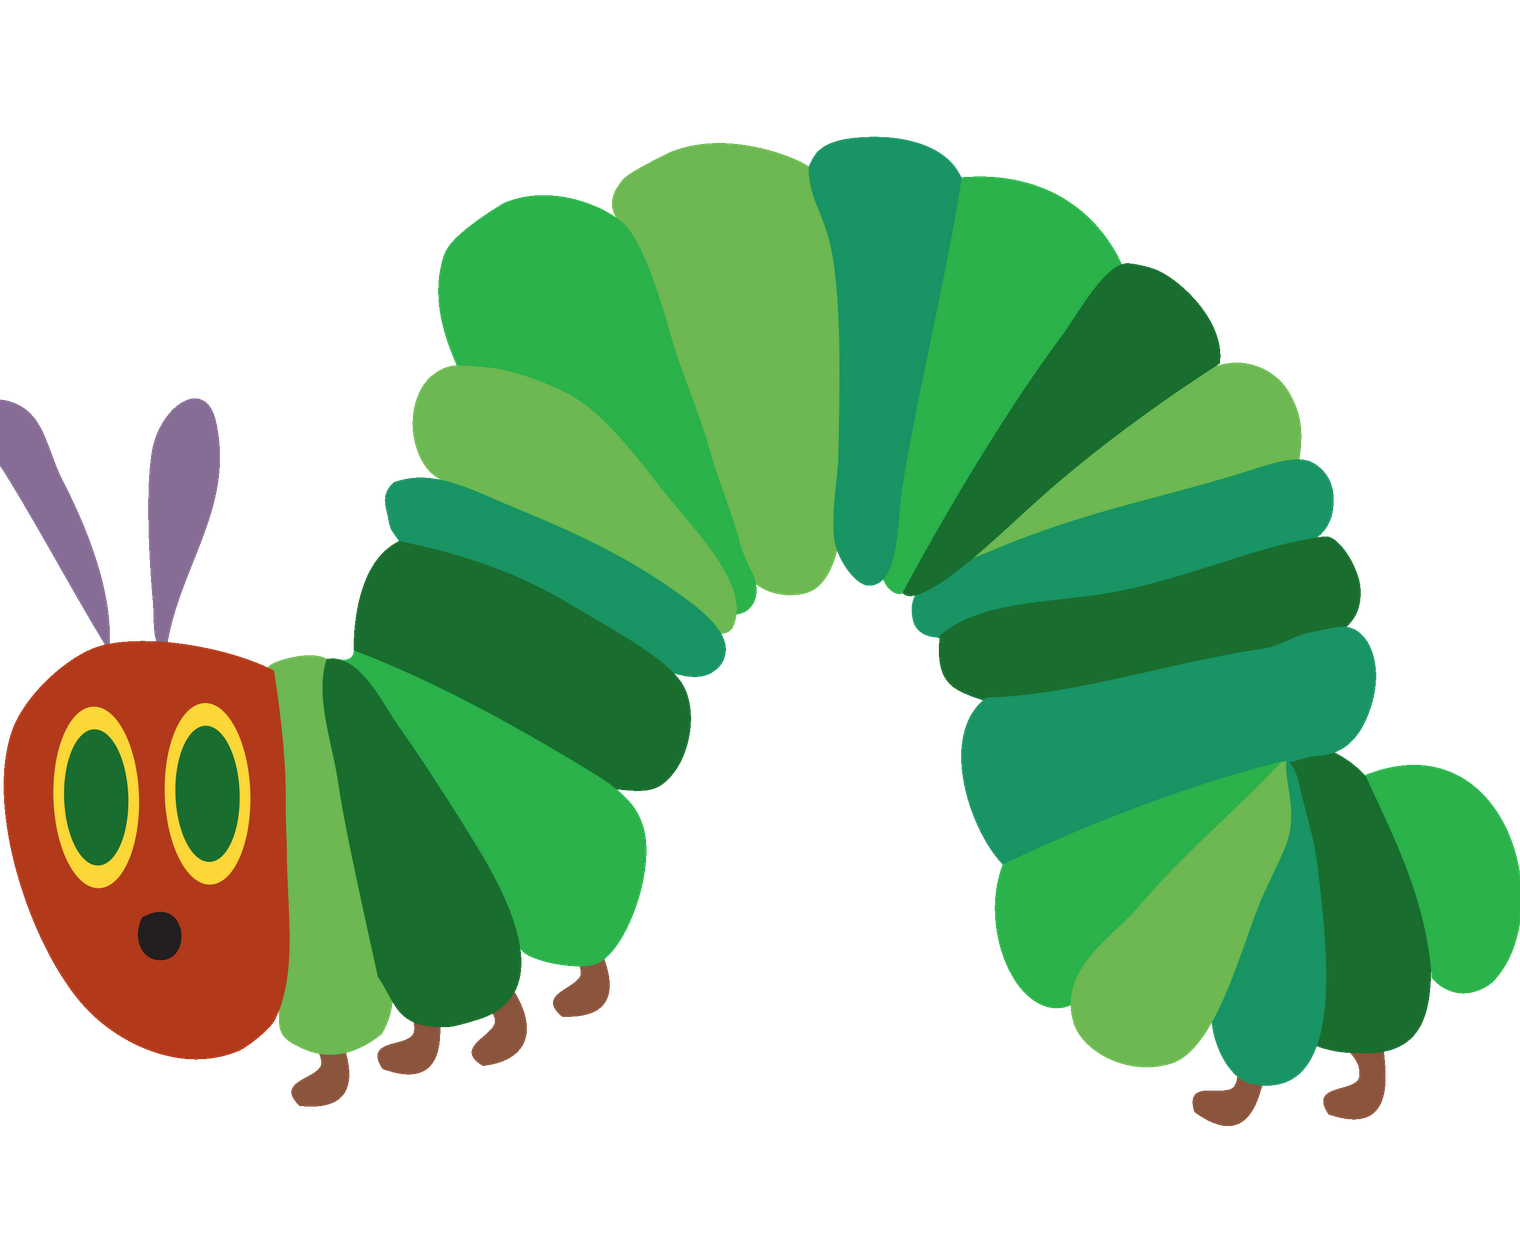 Hungry caterpillar apple clipart clipart library 28+ Collection of Hungry Caterpillar Clipart | High quality, free ... clipart library